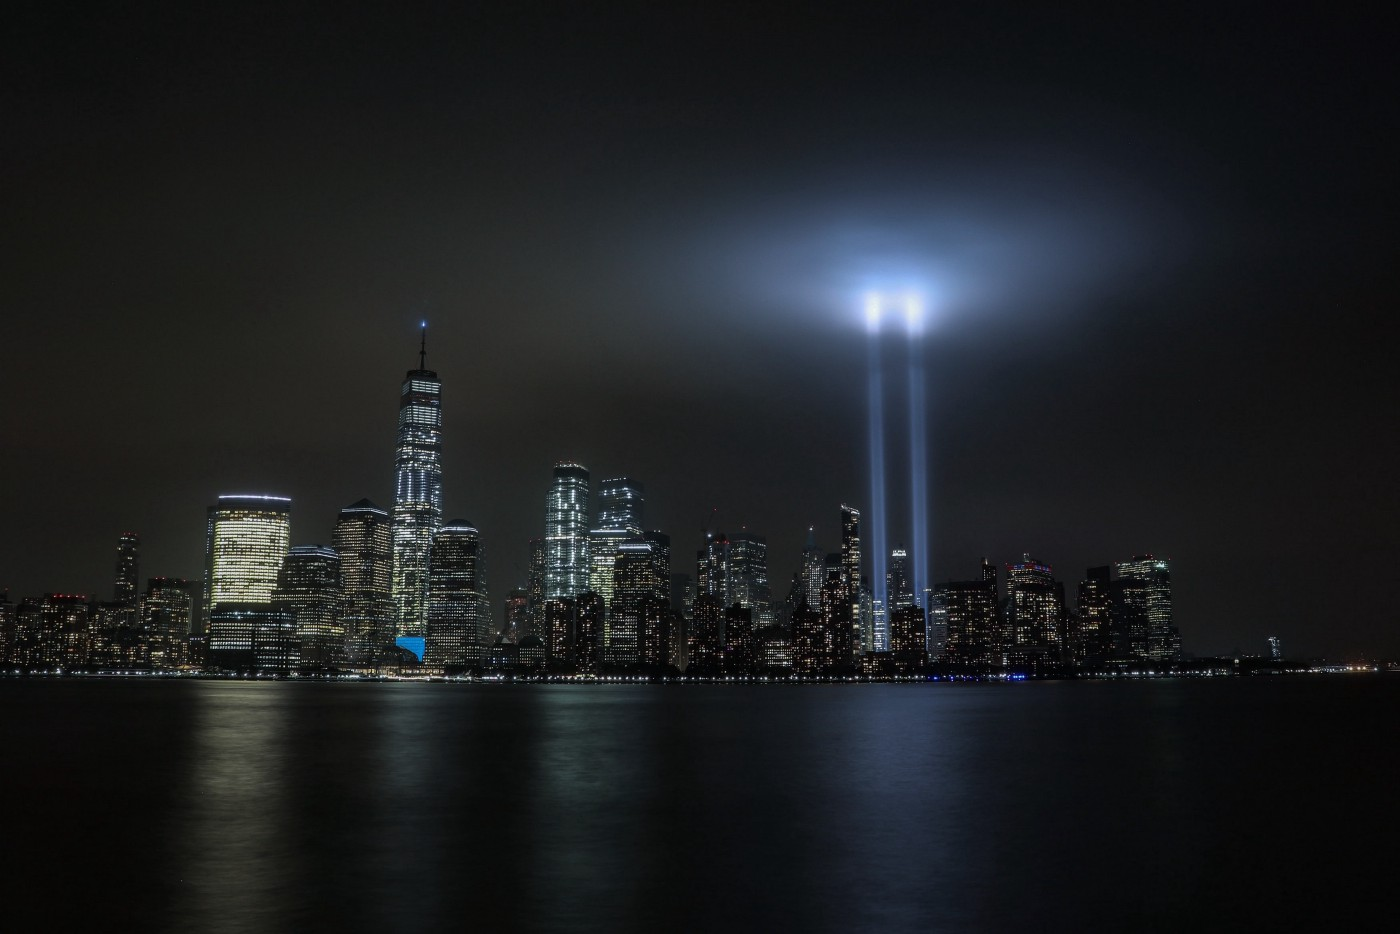 New York at night with Twin Towers memorial lights